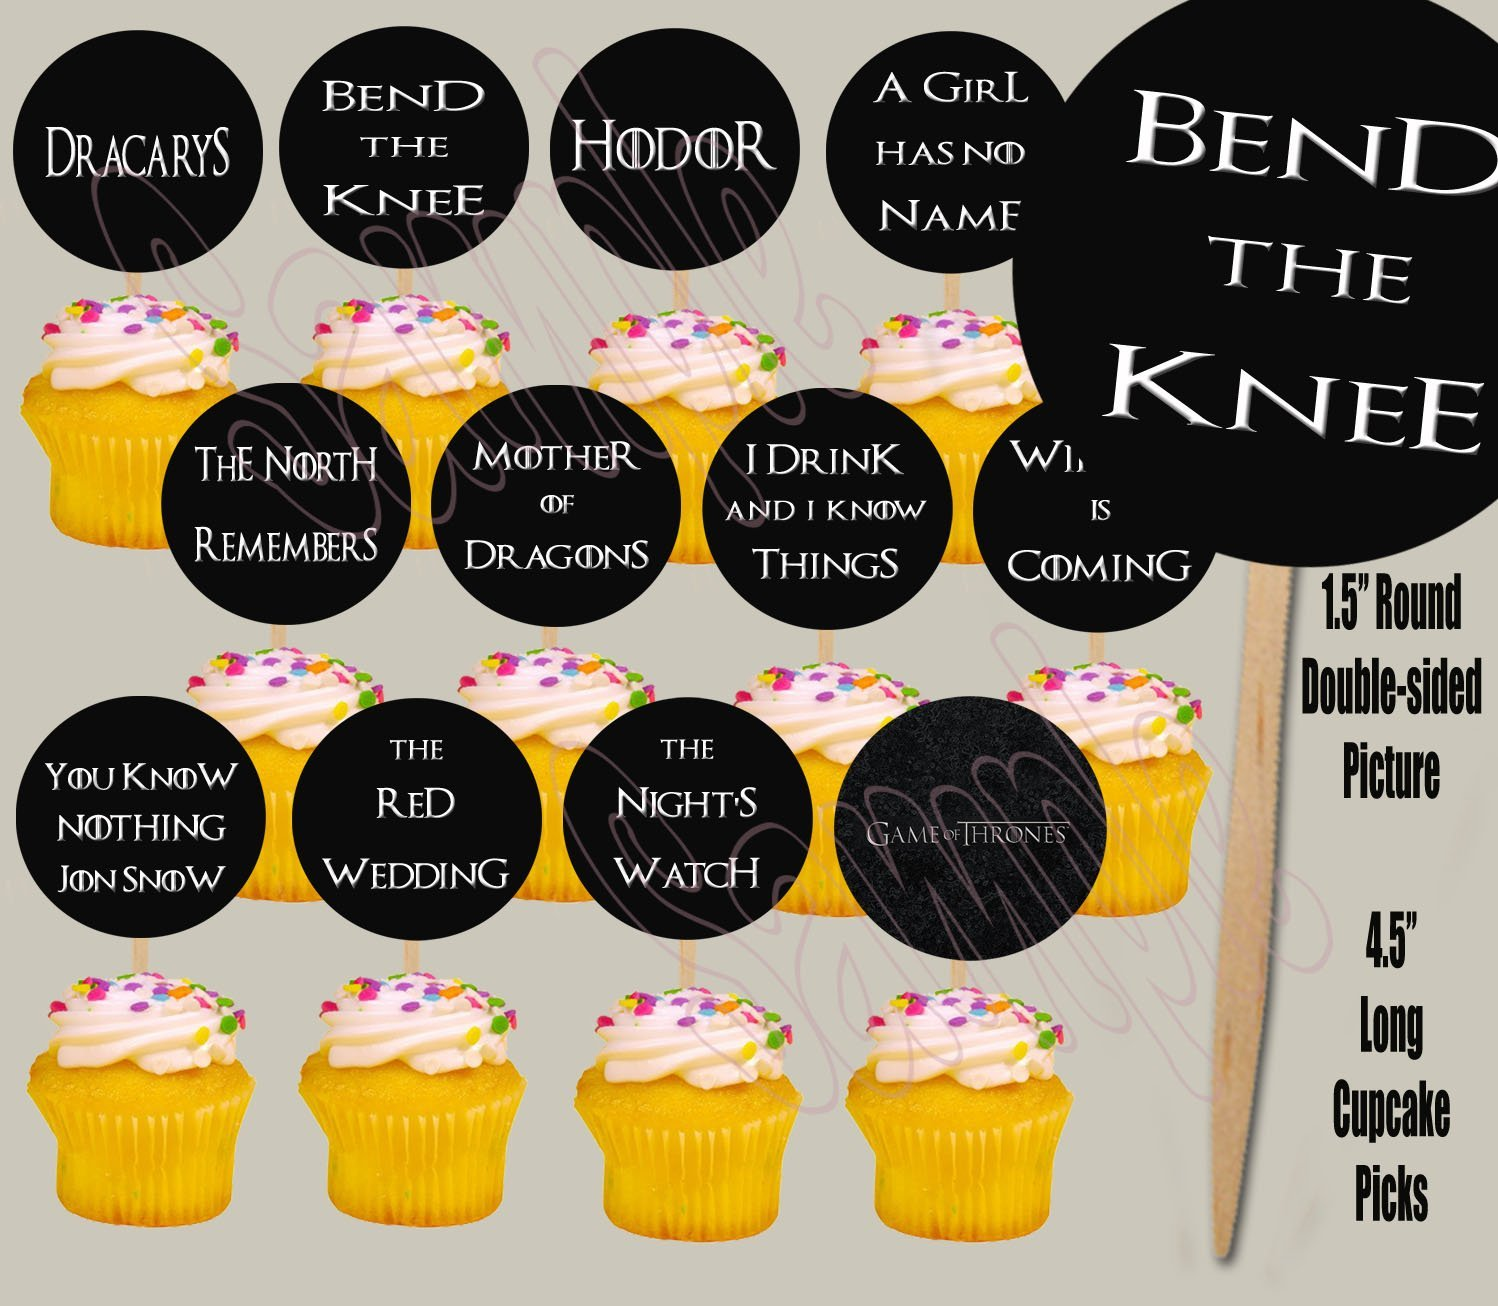 Party Over Here Game of Thrones QUOTES LINES PHRASES Double-sided Images Cupcake Picks Cake Topper -12 by Party Over Here